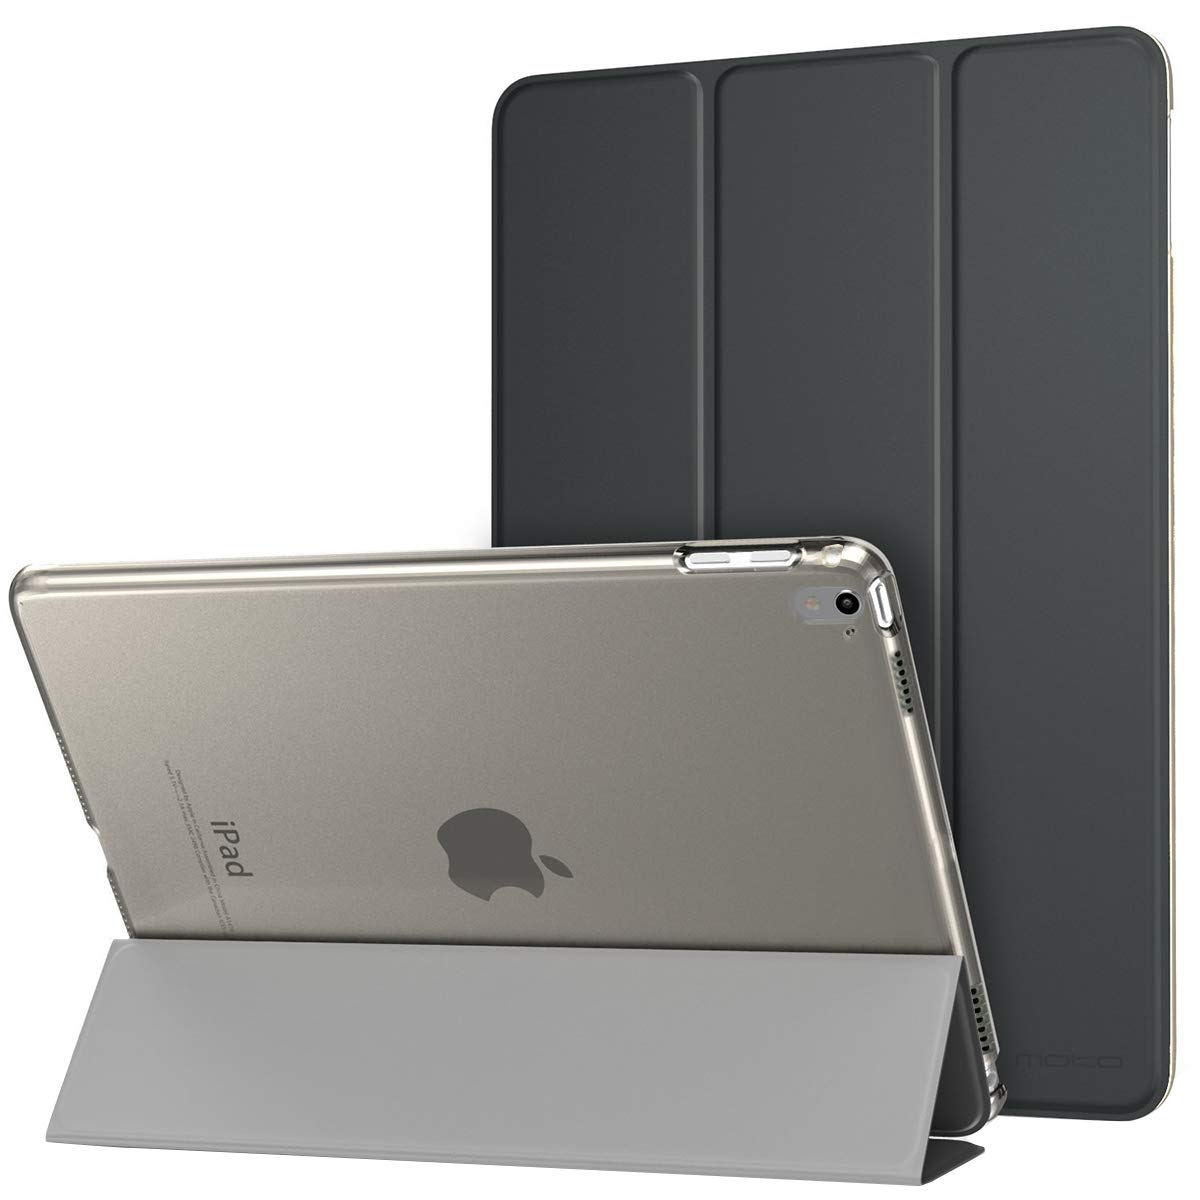 MoKo Case for iPad Pro 9.7 - Slim Lightweight Smart Shell Stand Cover with Translucent Frosted Back Protector for Apple iPad Pro 9.7 inch 2016 Release Tablet, Space Gray (with Auto Wake/Sleep)